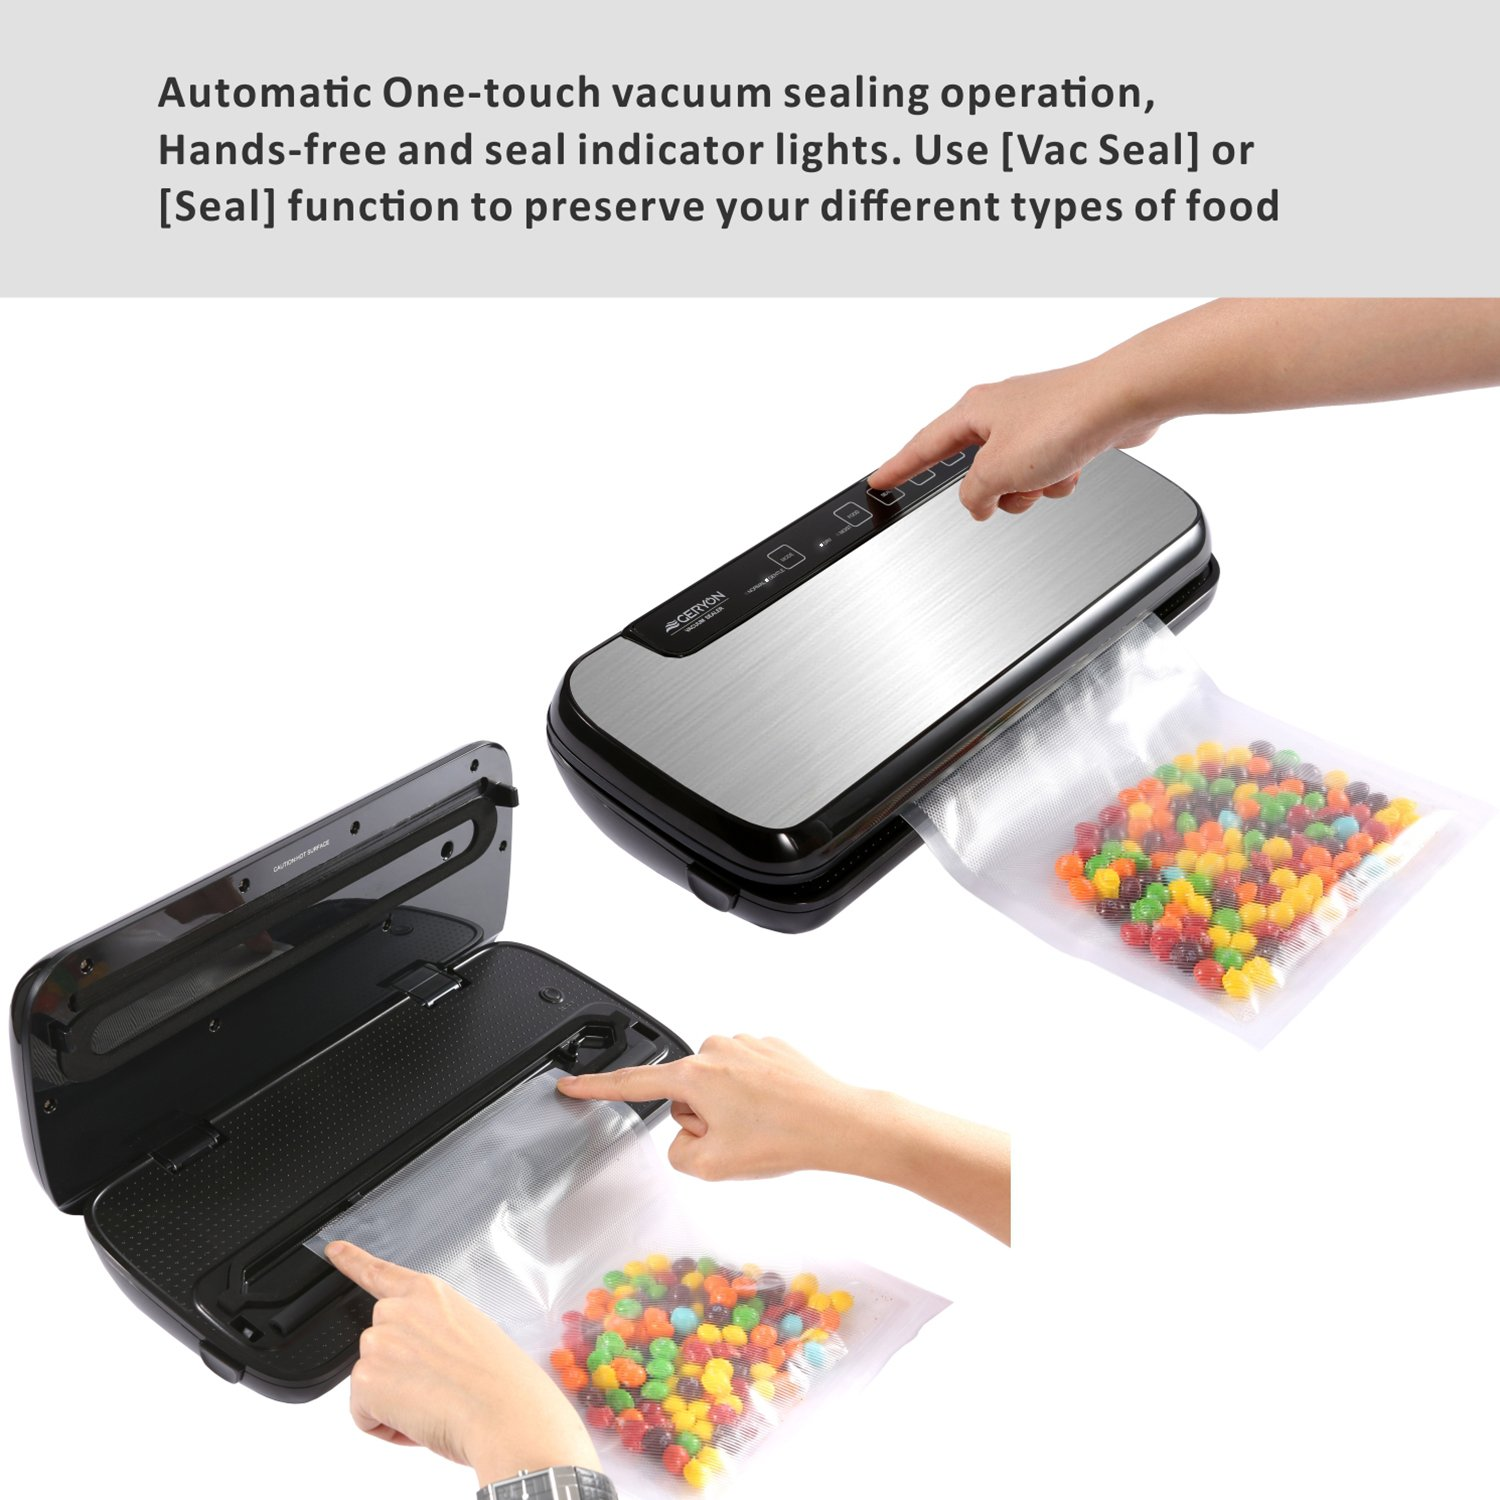 GERYON Vacuum Sealer, 4-in-1 Automatic Food Sealers with Starter Kit of Saver Roll, Bags and Hose for Food Preservation (Stainless Steel) by GERYON (Image #3)